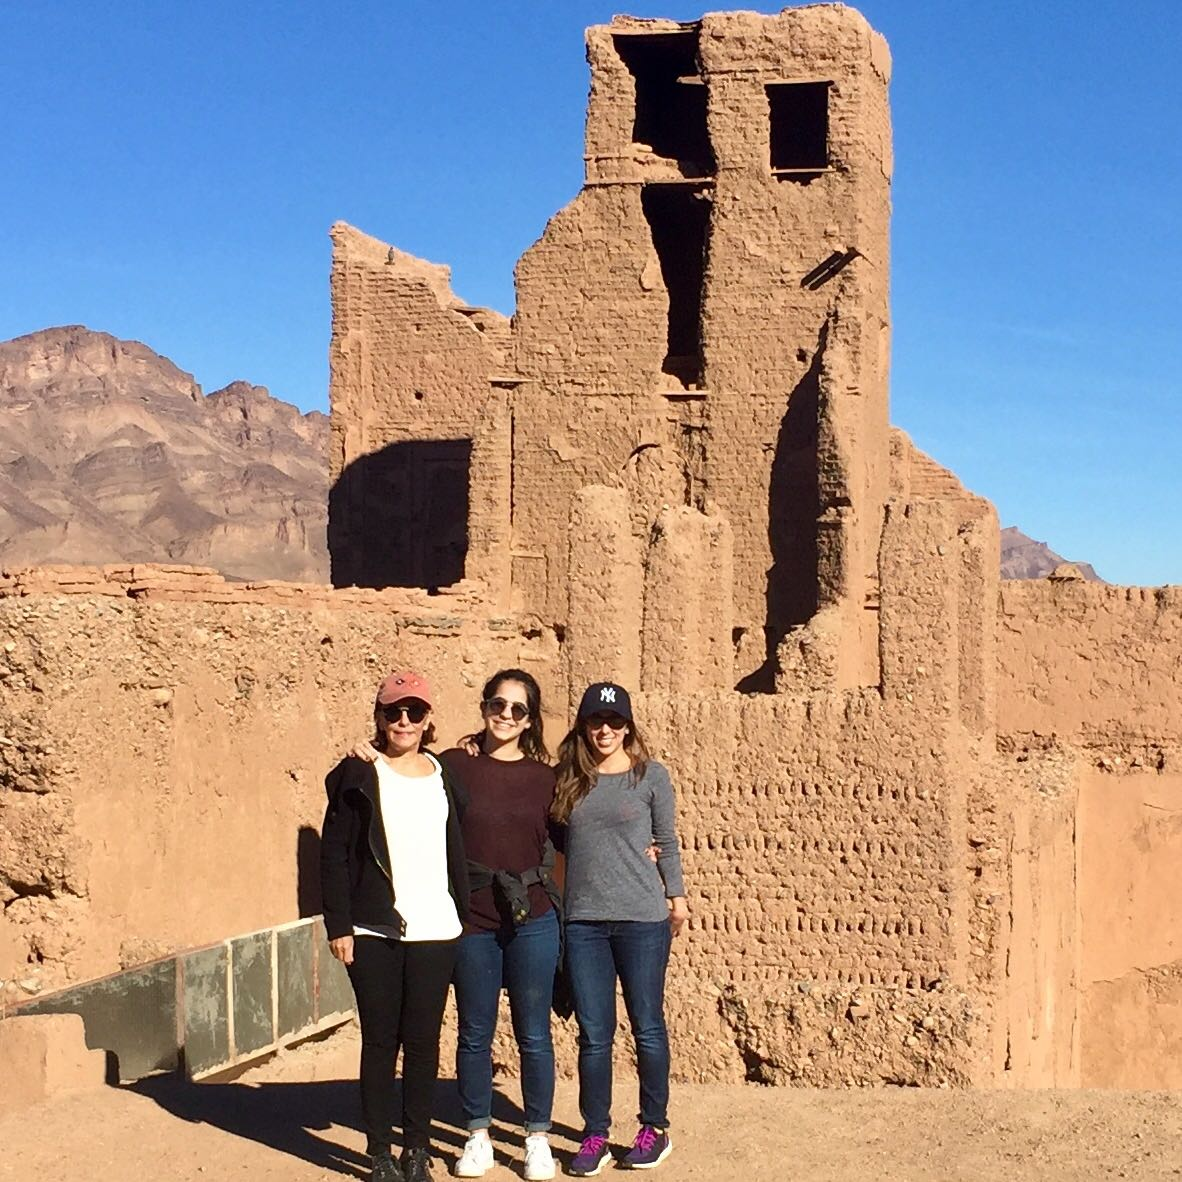 Morocco-Rare-Finds-clients-at Ait-Ben-Haddou